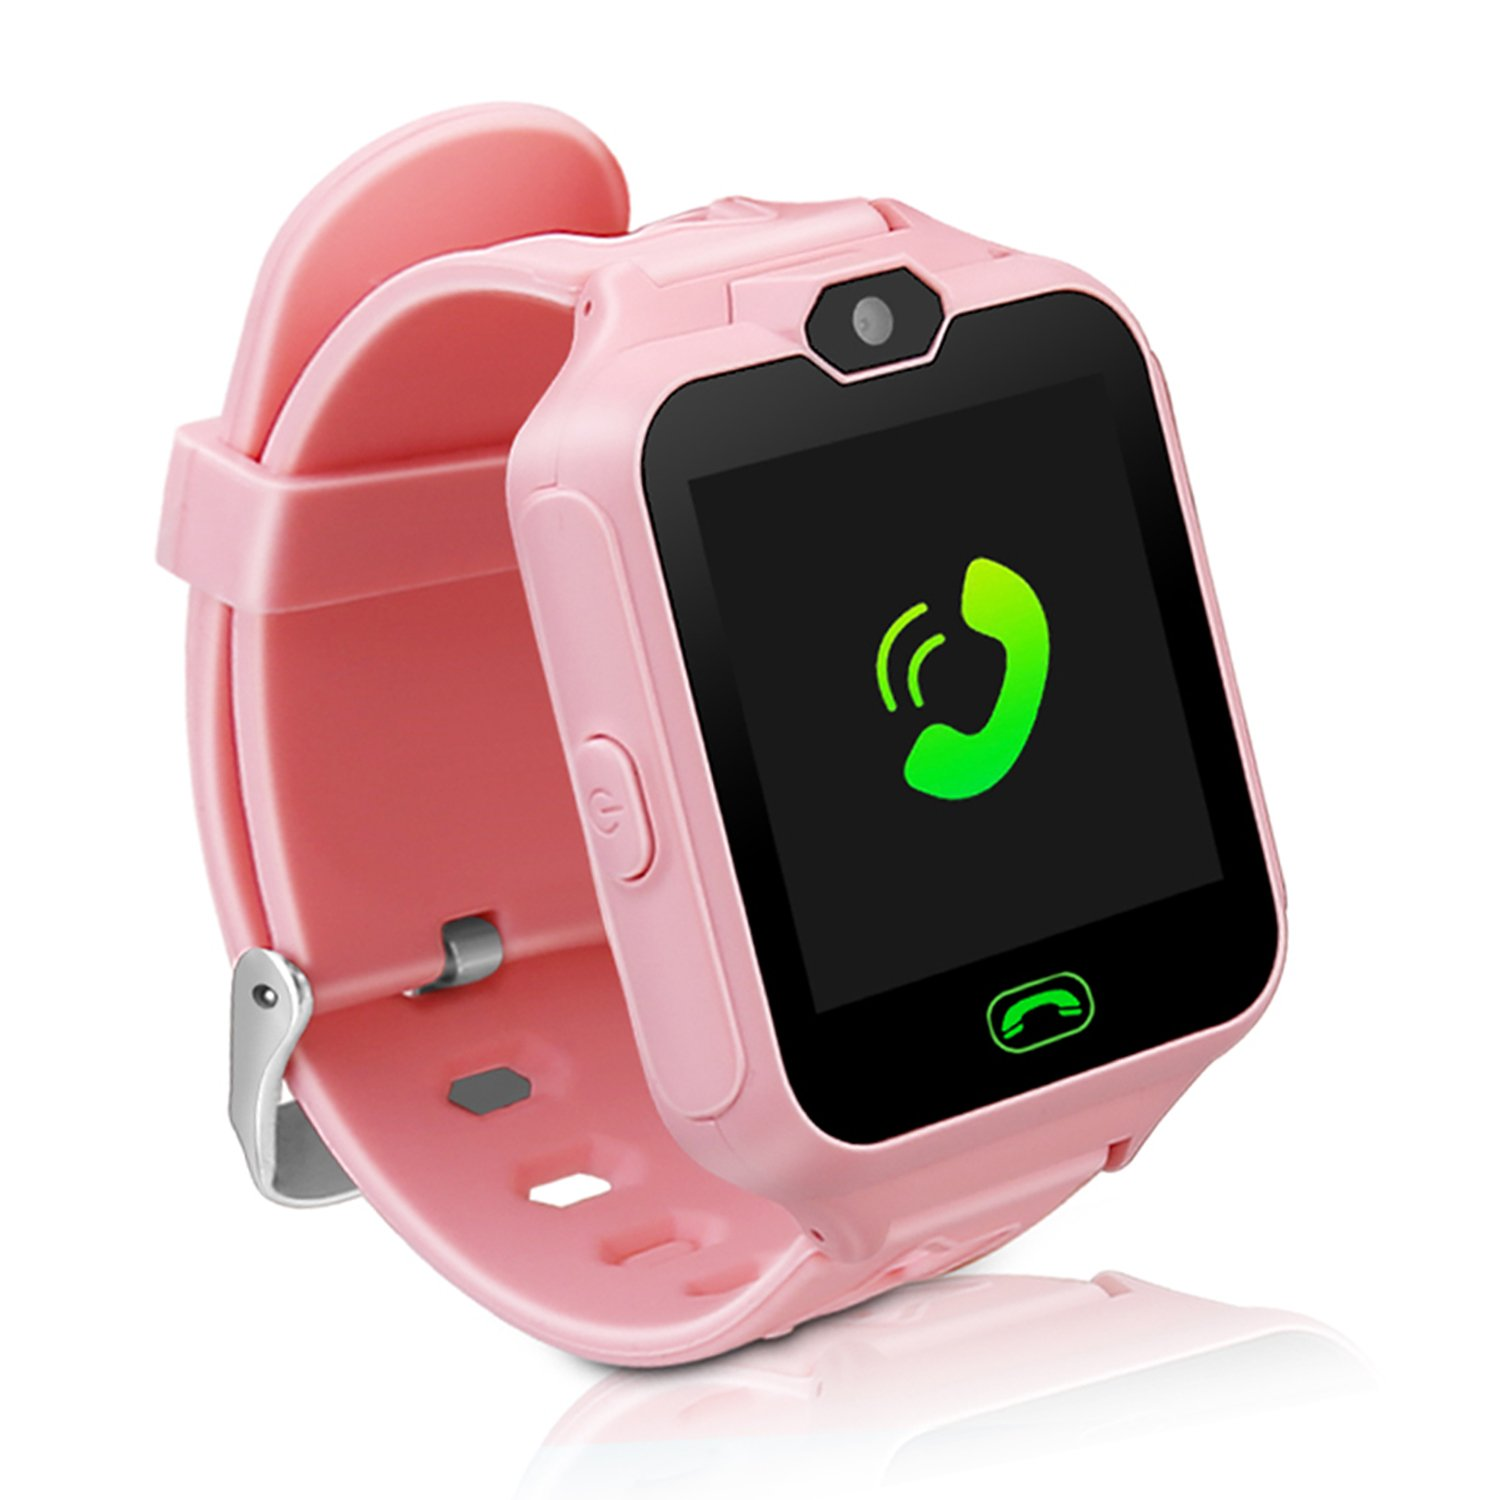 Kids Smart Watch Phone,Unlocked Waterproof Smart Phone Watch for Girls Boys with Camera Games Touchscreen,Children SOS Cell Phone Watch with SIM and SD Slot,Perfect Holiday Birthday Gifts(Pink) by MIMLI (Image #1)